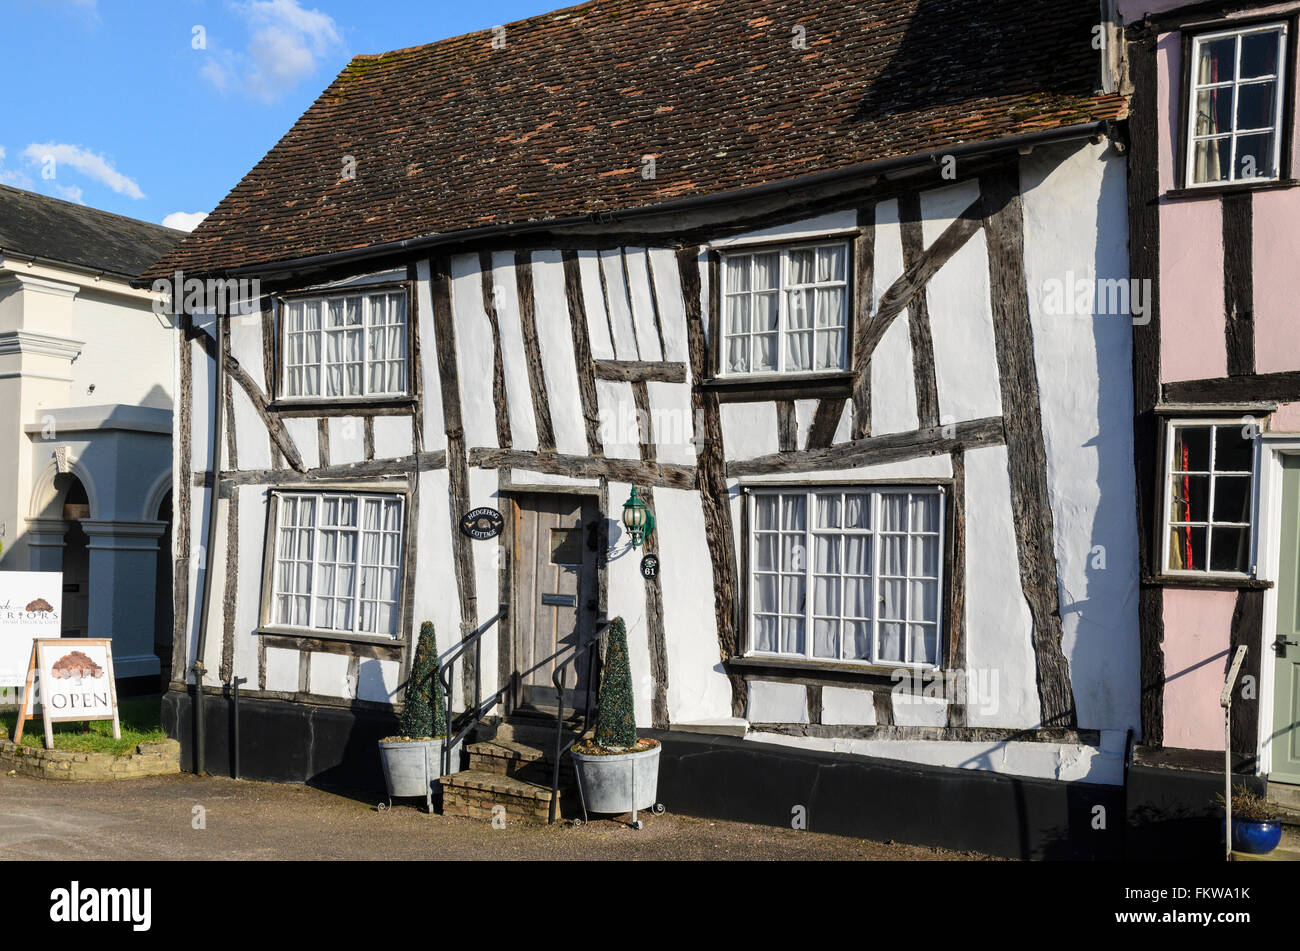 A medieval half timbered building on High Street, Lavenham, Suffolk, England, United Kingdom. Stock Photo